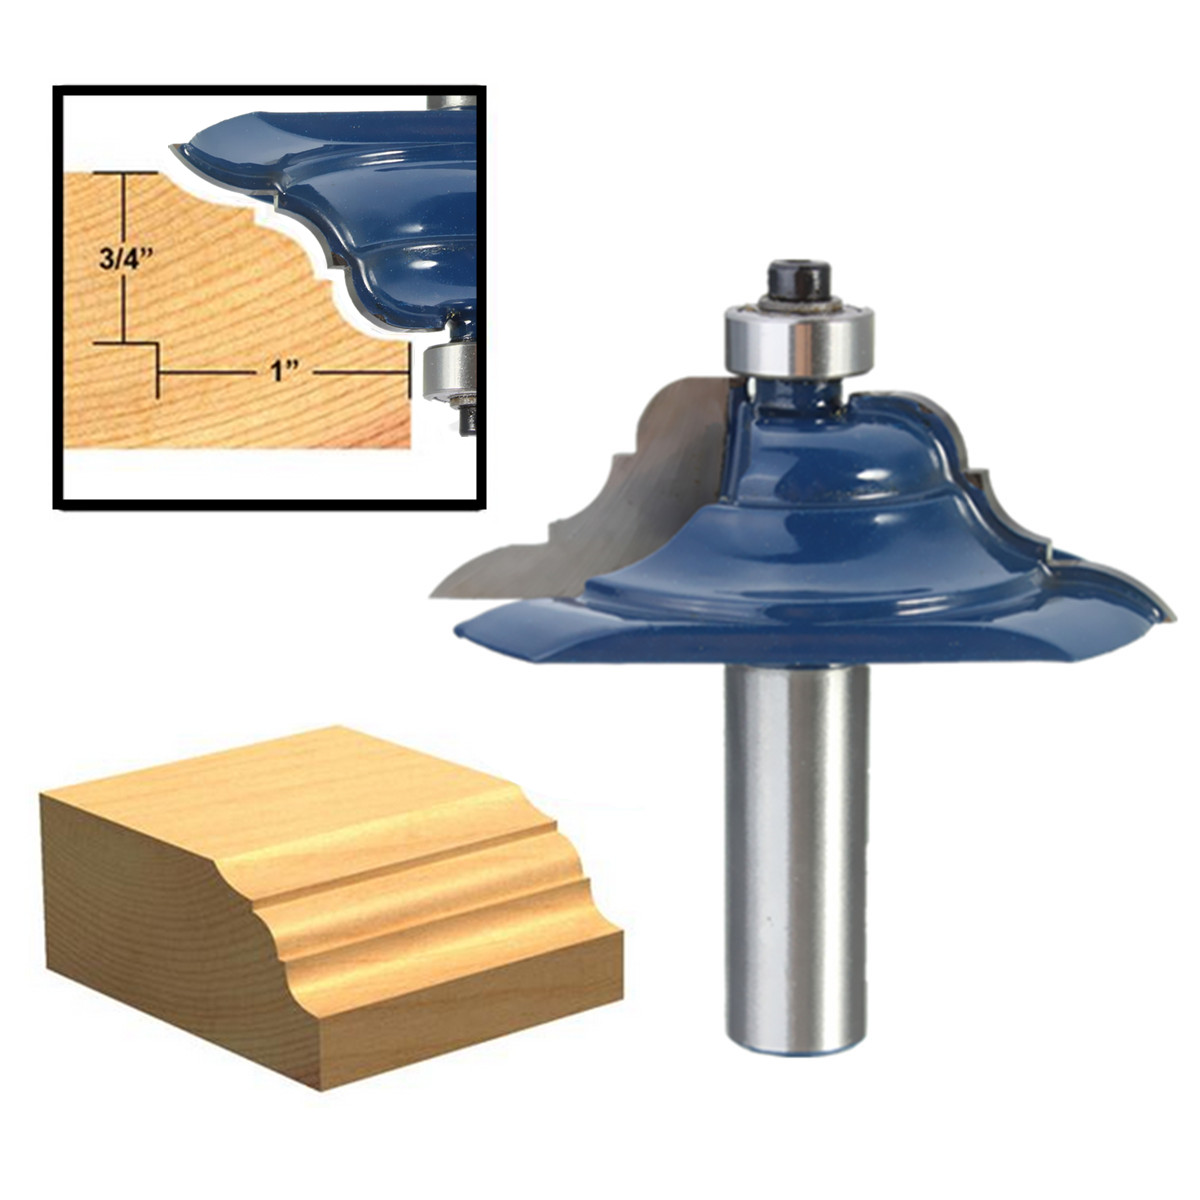 1PC Rail&Stile Router Bit 1/2'' Shank Shaker Door Woodworking Chisel Cutter Power Tool Drill Bit for Wooden Door High Quality high grade carbide alloy 1 2 shank 2 1 4 dia bottom cleaning router bit woodworking milling cutter for mdf wood 55mm mayitr